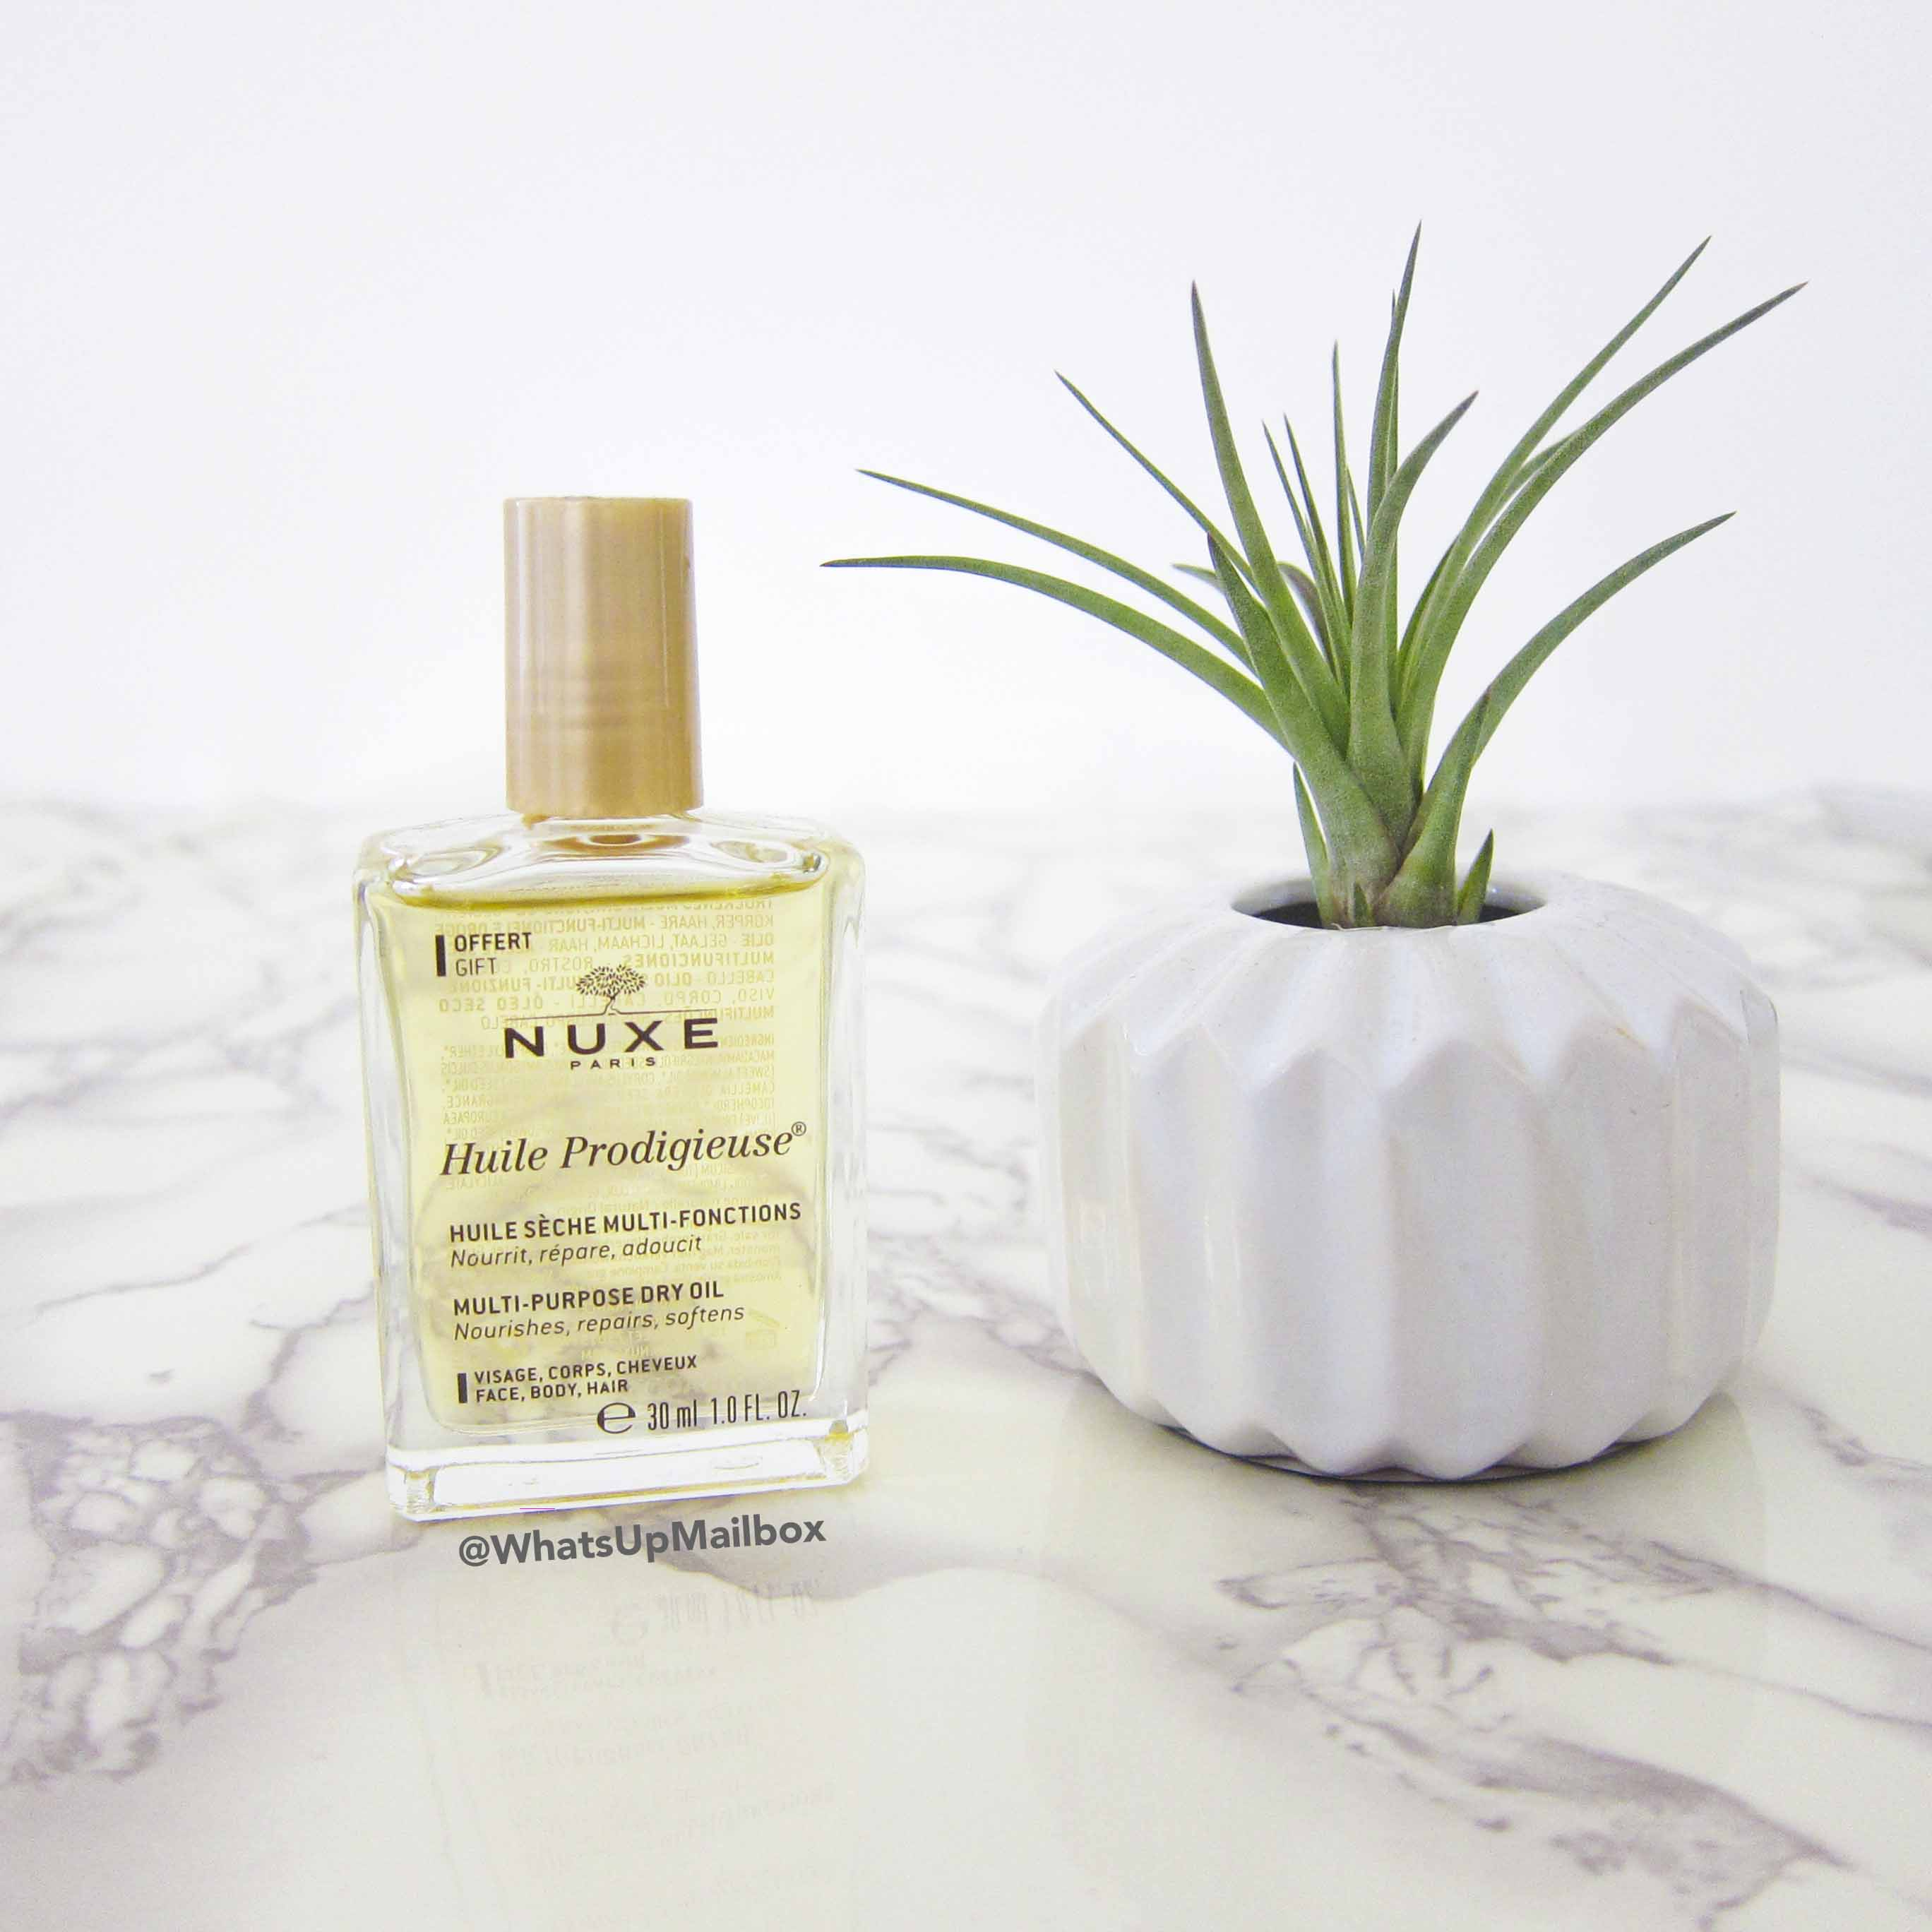 Oui Please Vol. 2.3 - Nuxe Huile Prodigieuse Multi Purpose Dry Oil